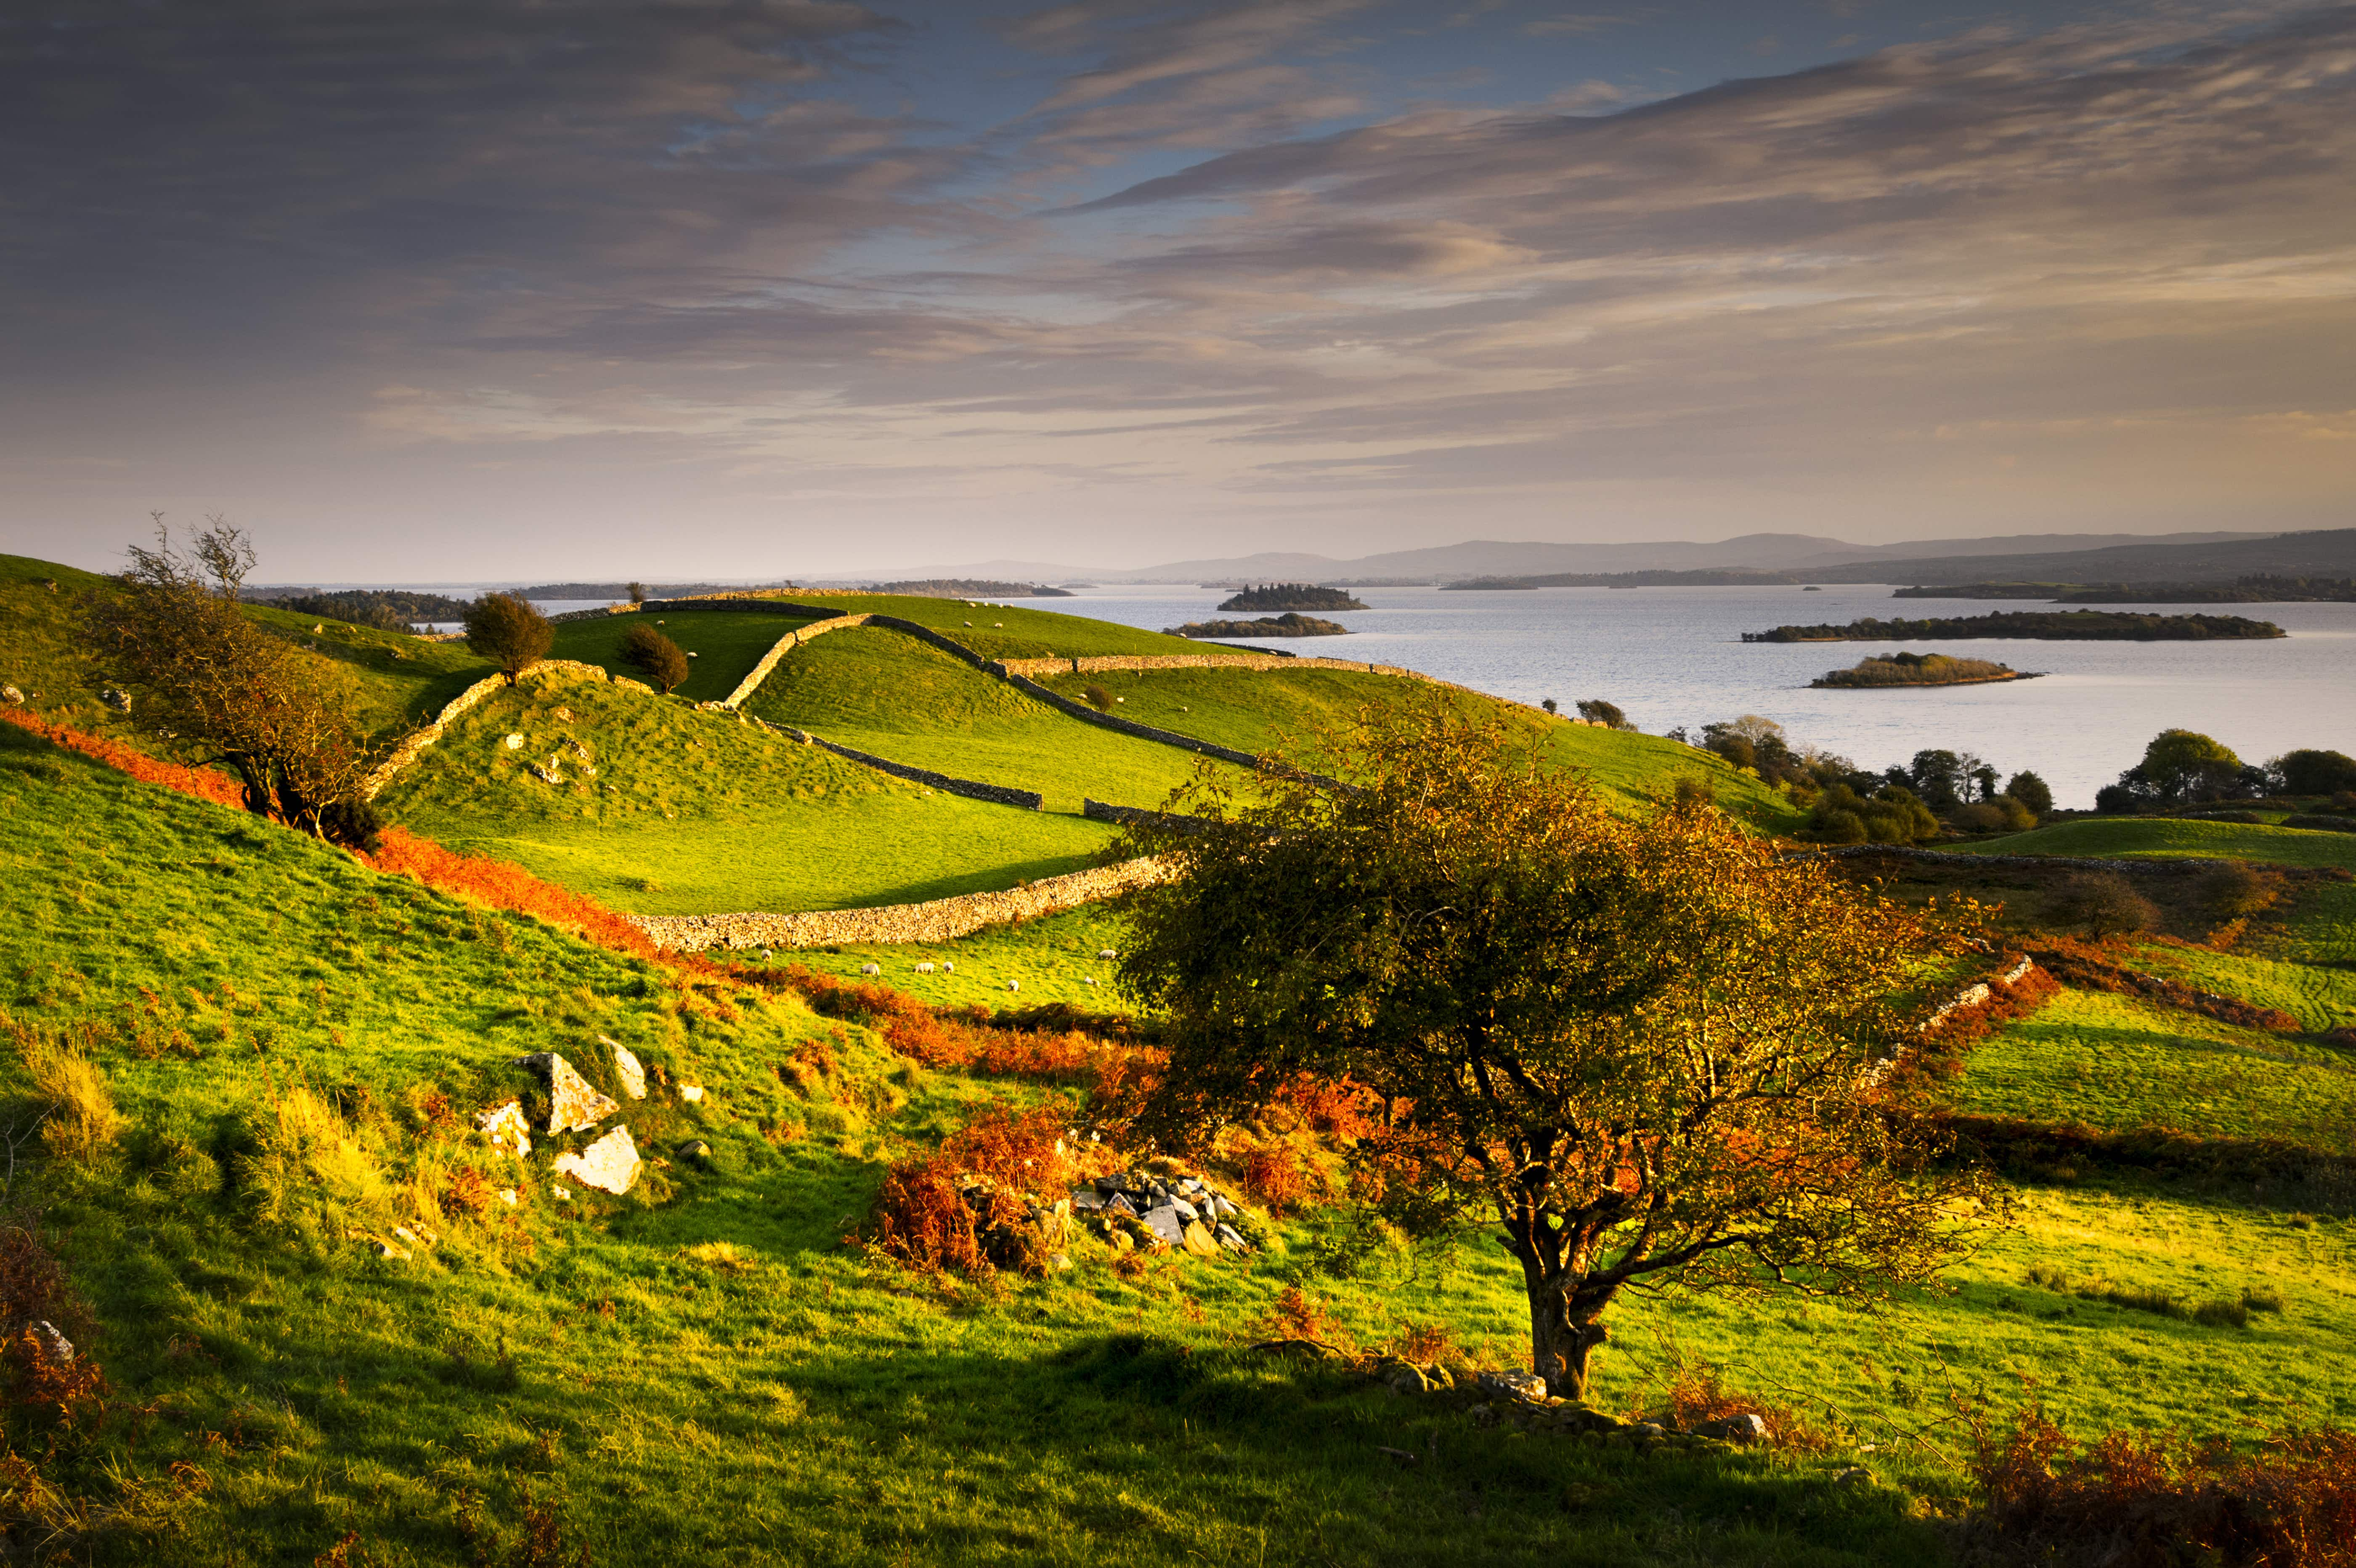 Autumnal adventures: What to do in Ireland in the fall